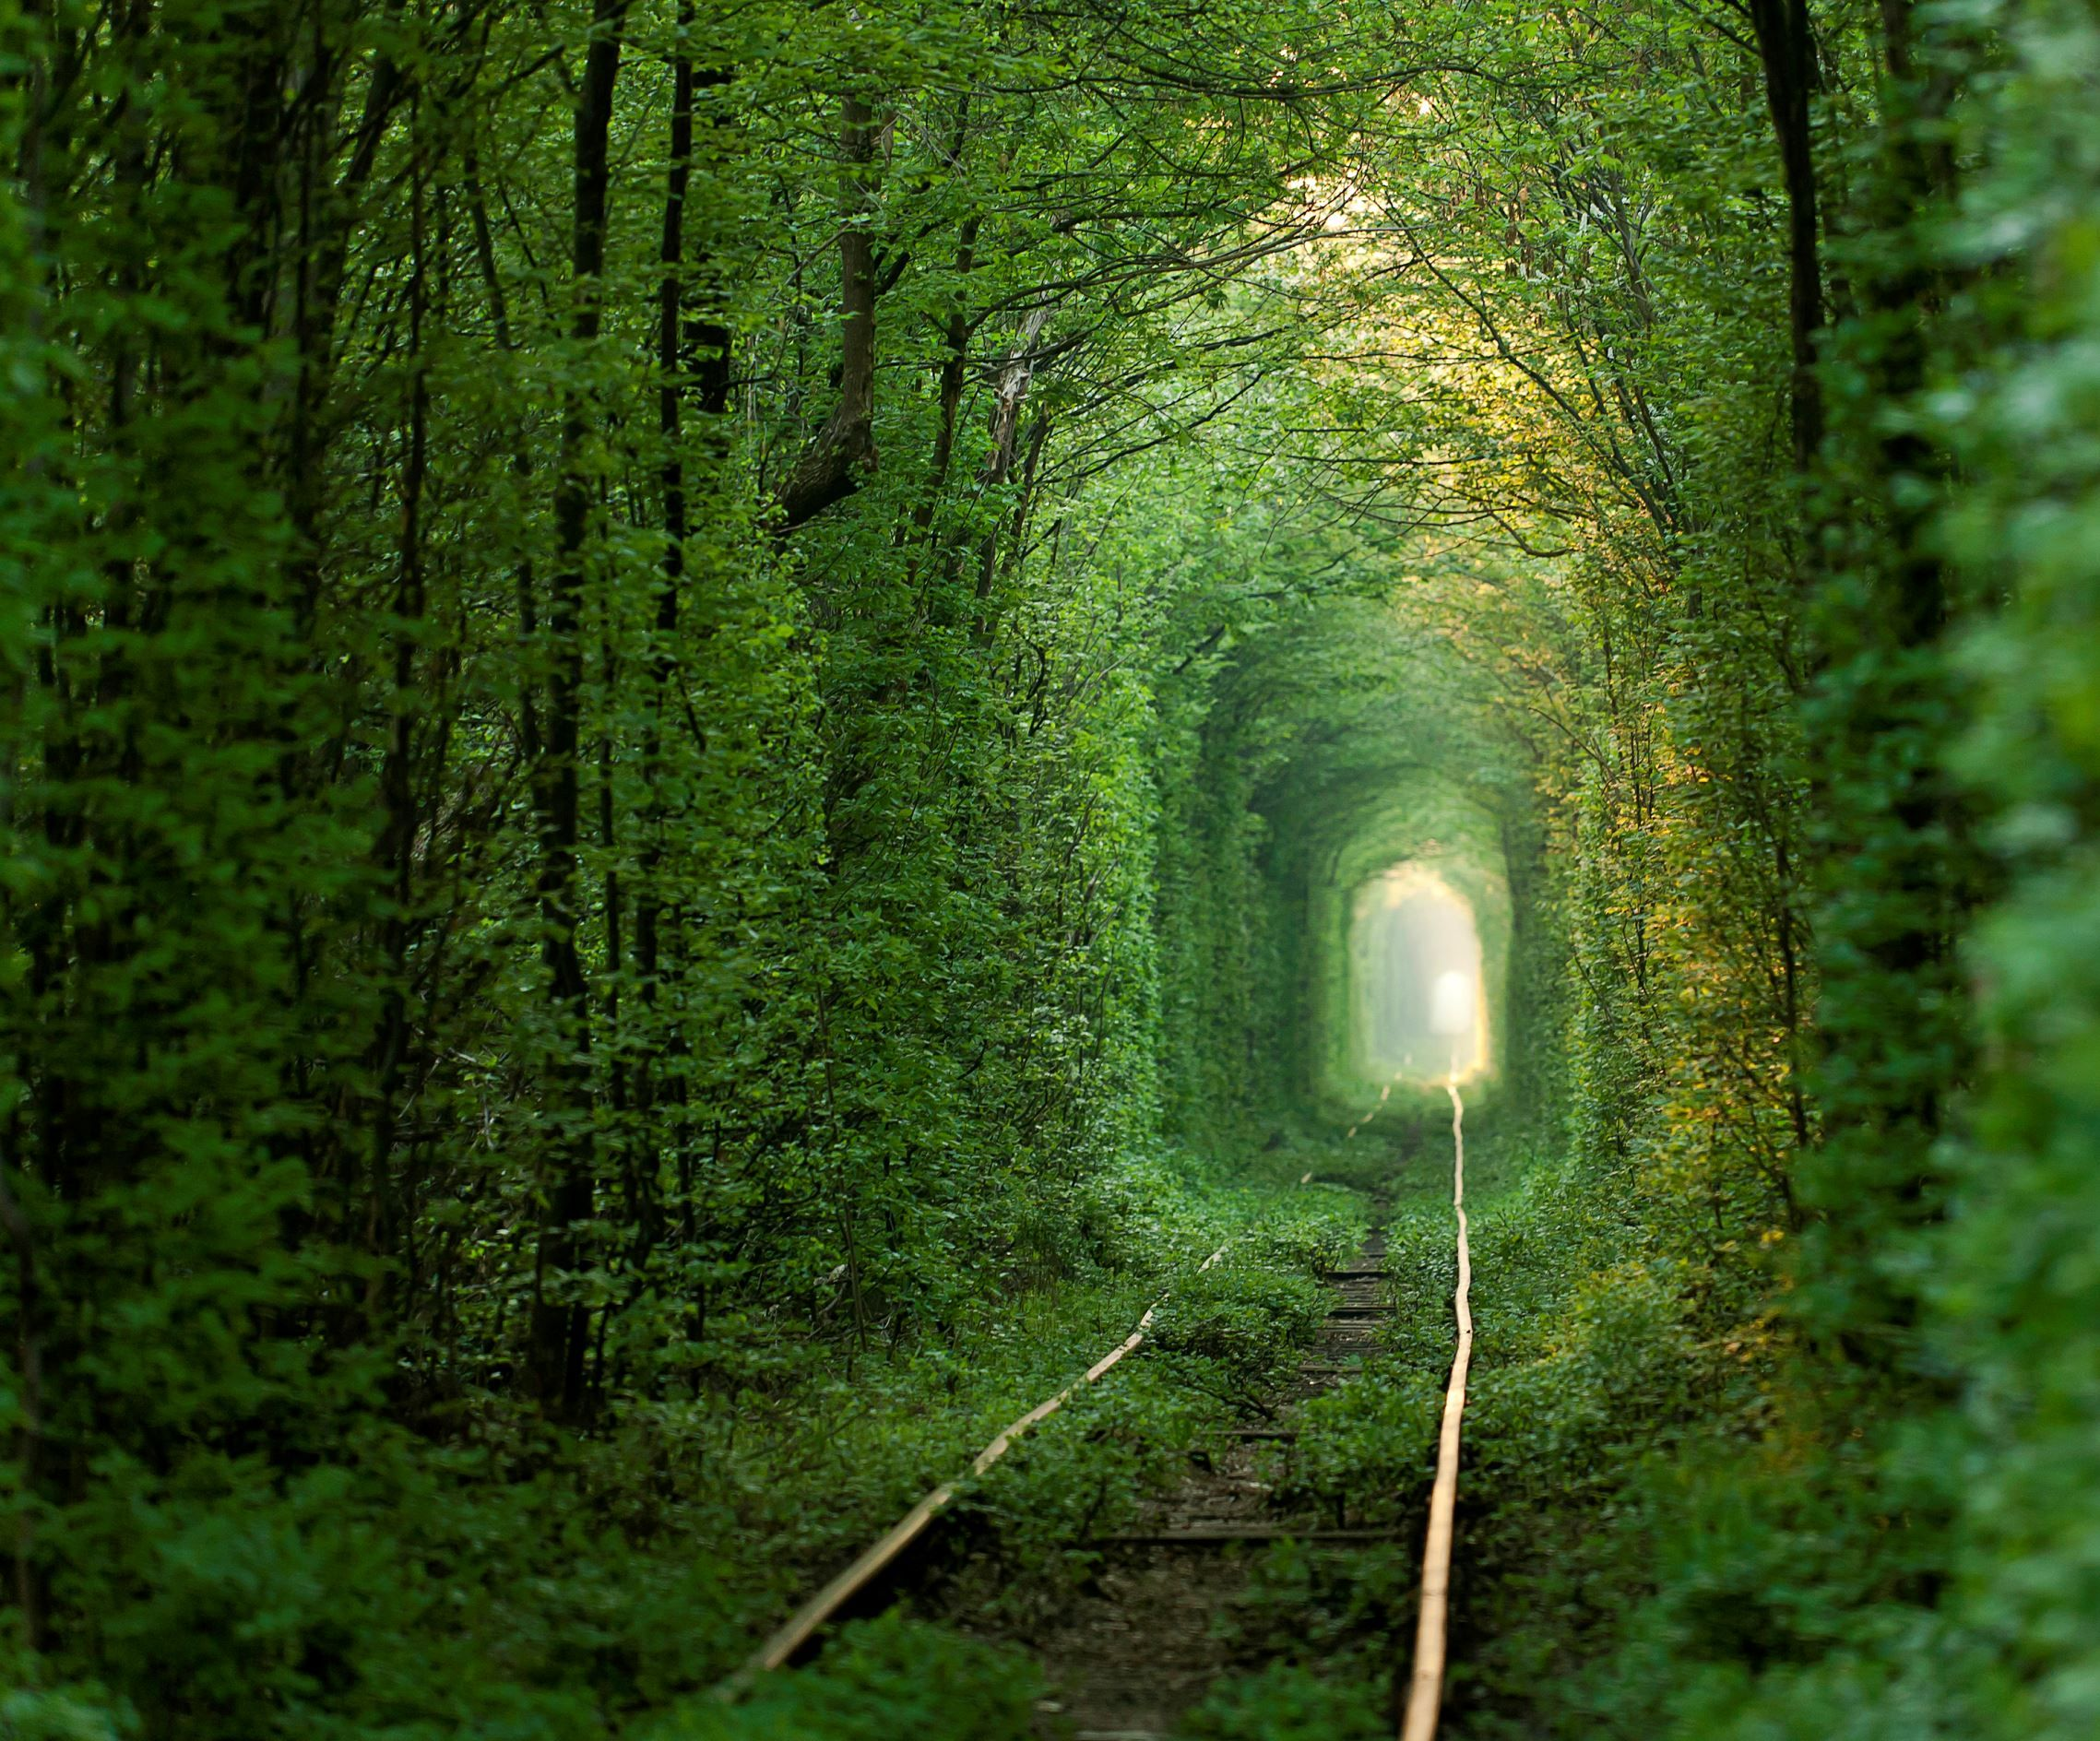 Tunnel of Love, Ukraine This beautiful tunnel looks like something out of a fairy tale. It's actually still used today - trains chug through it three times a day to deliver wood to a factory. It's believed that if couples who are truly in love